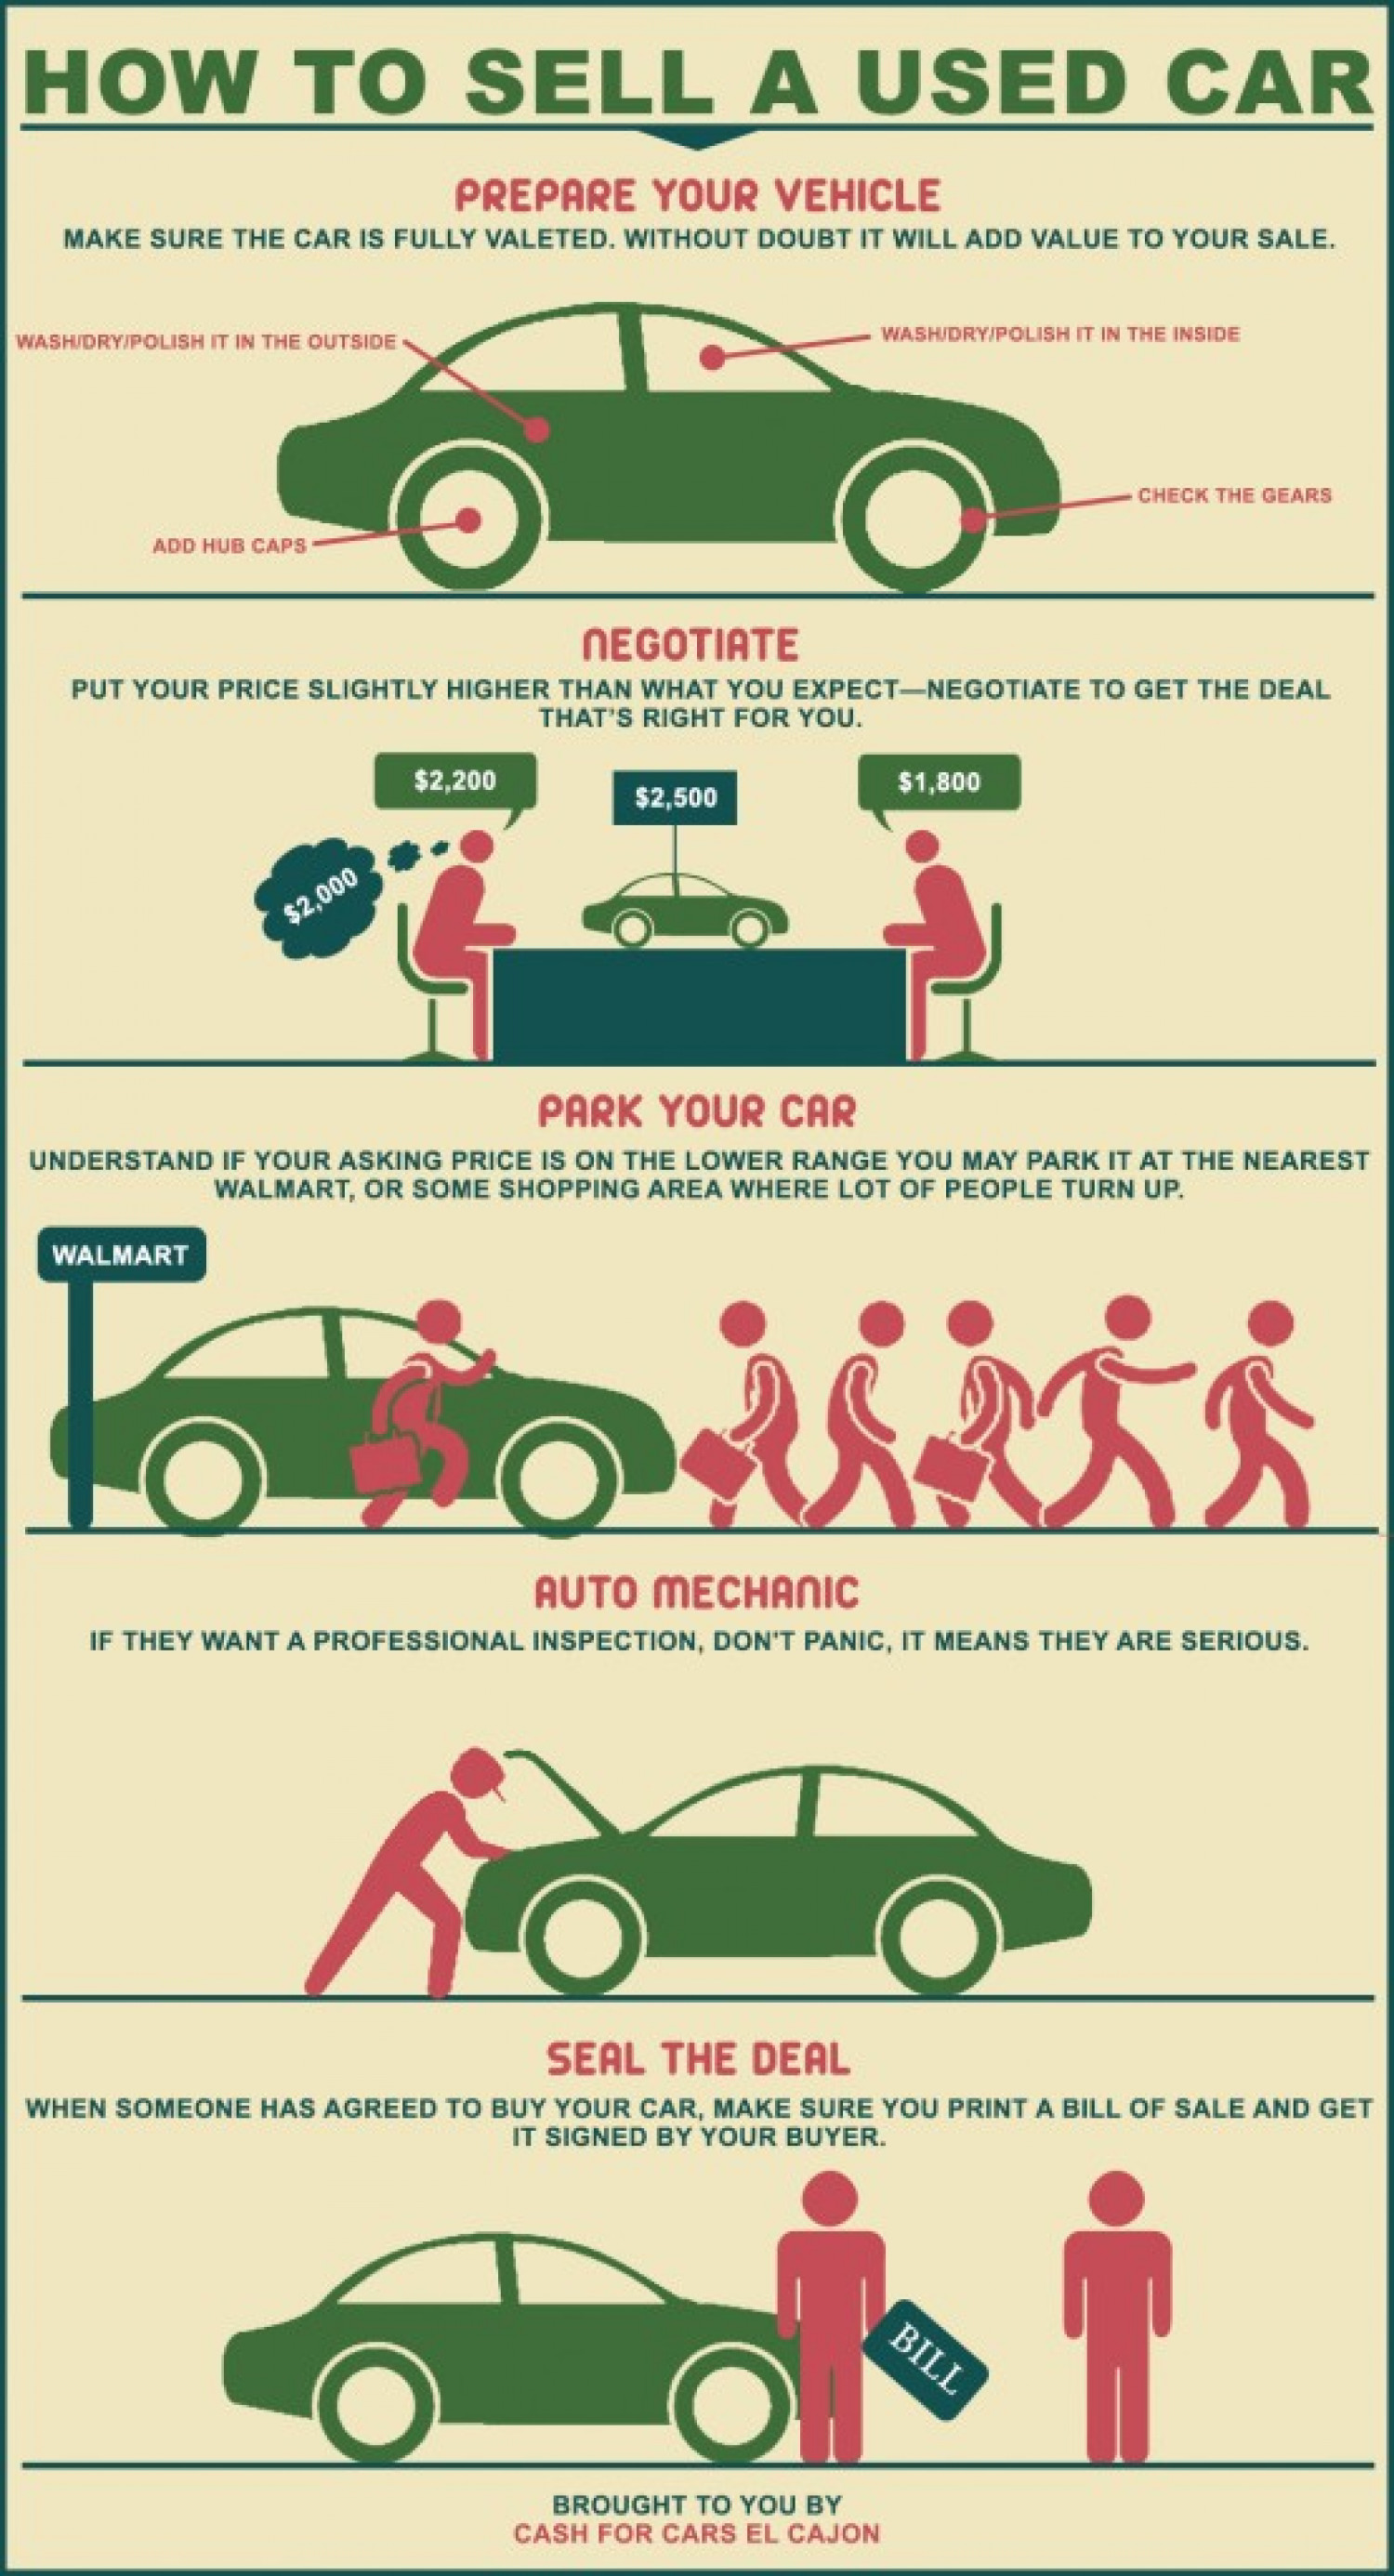 How To Sell A Used Car | Visual.ly